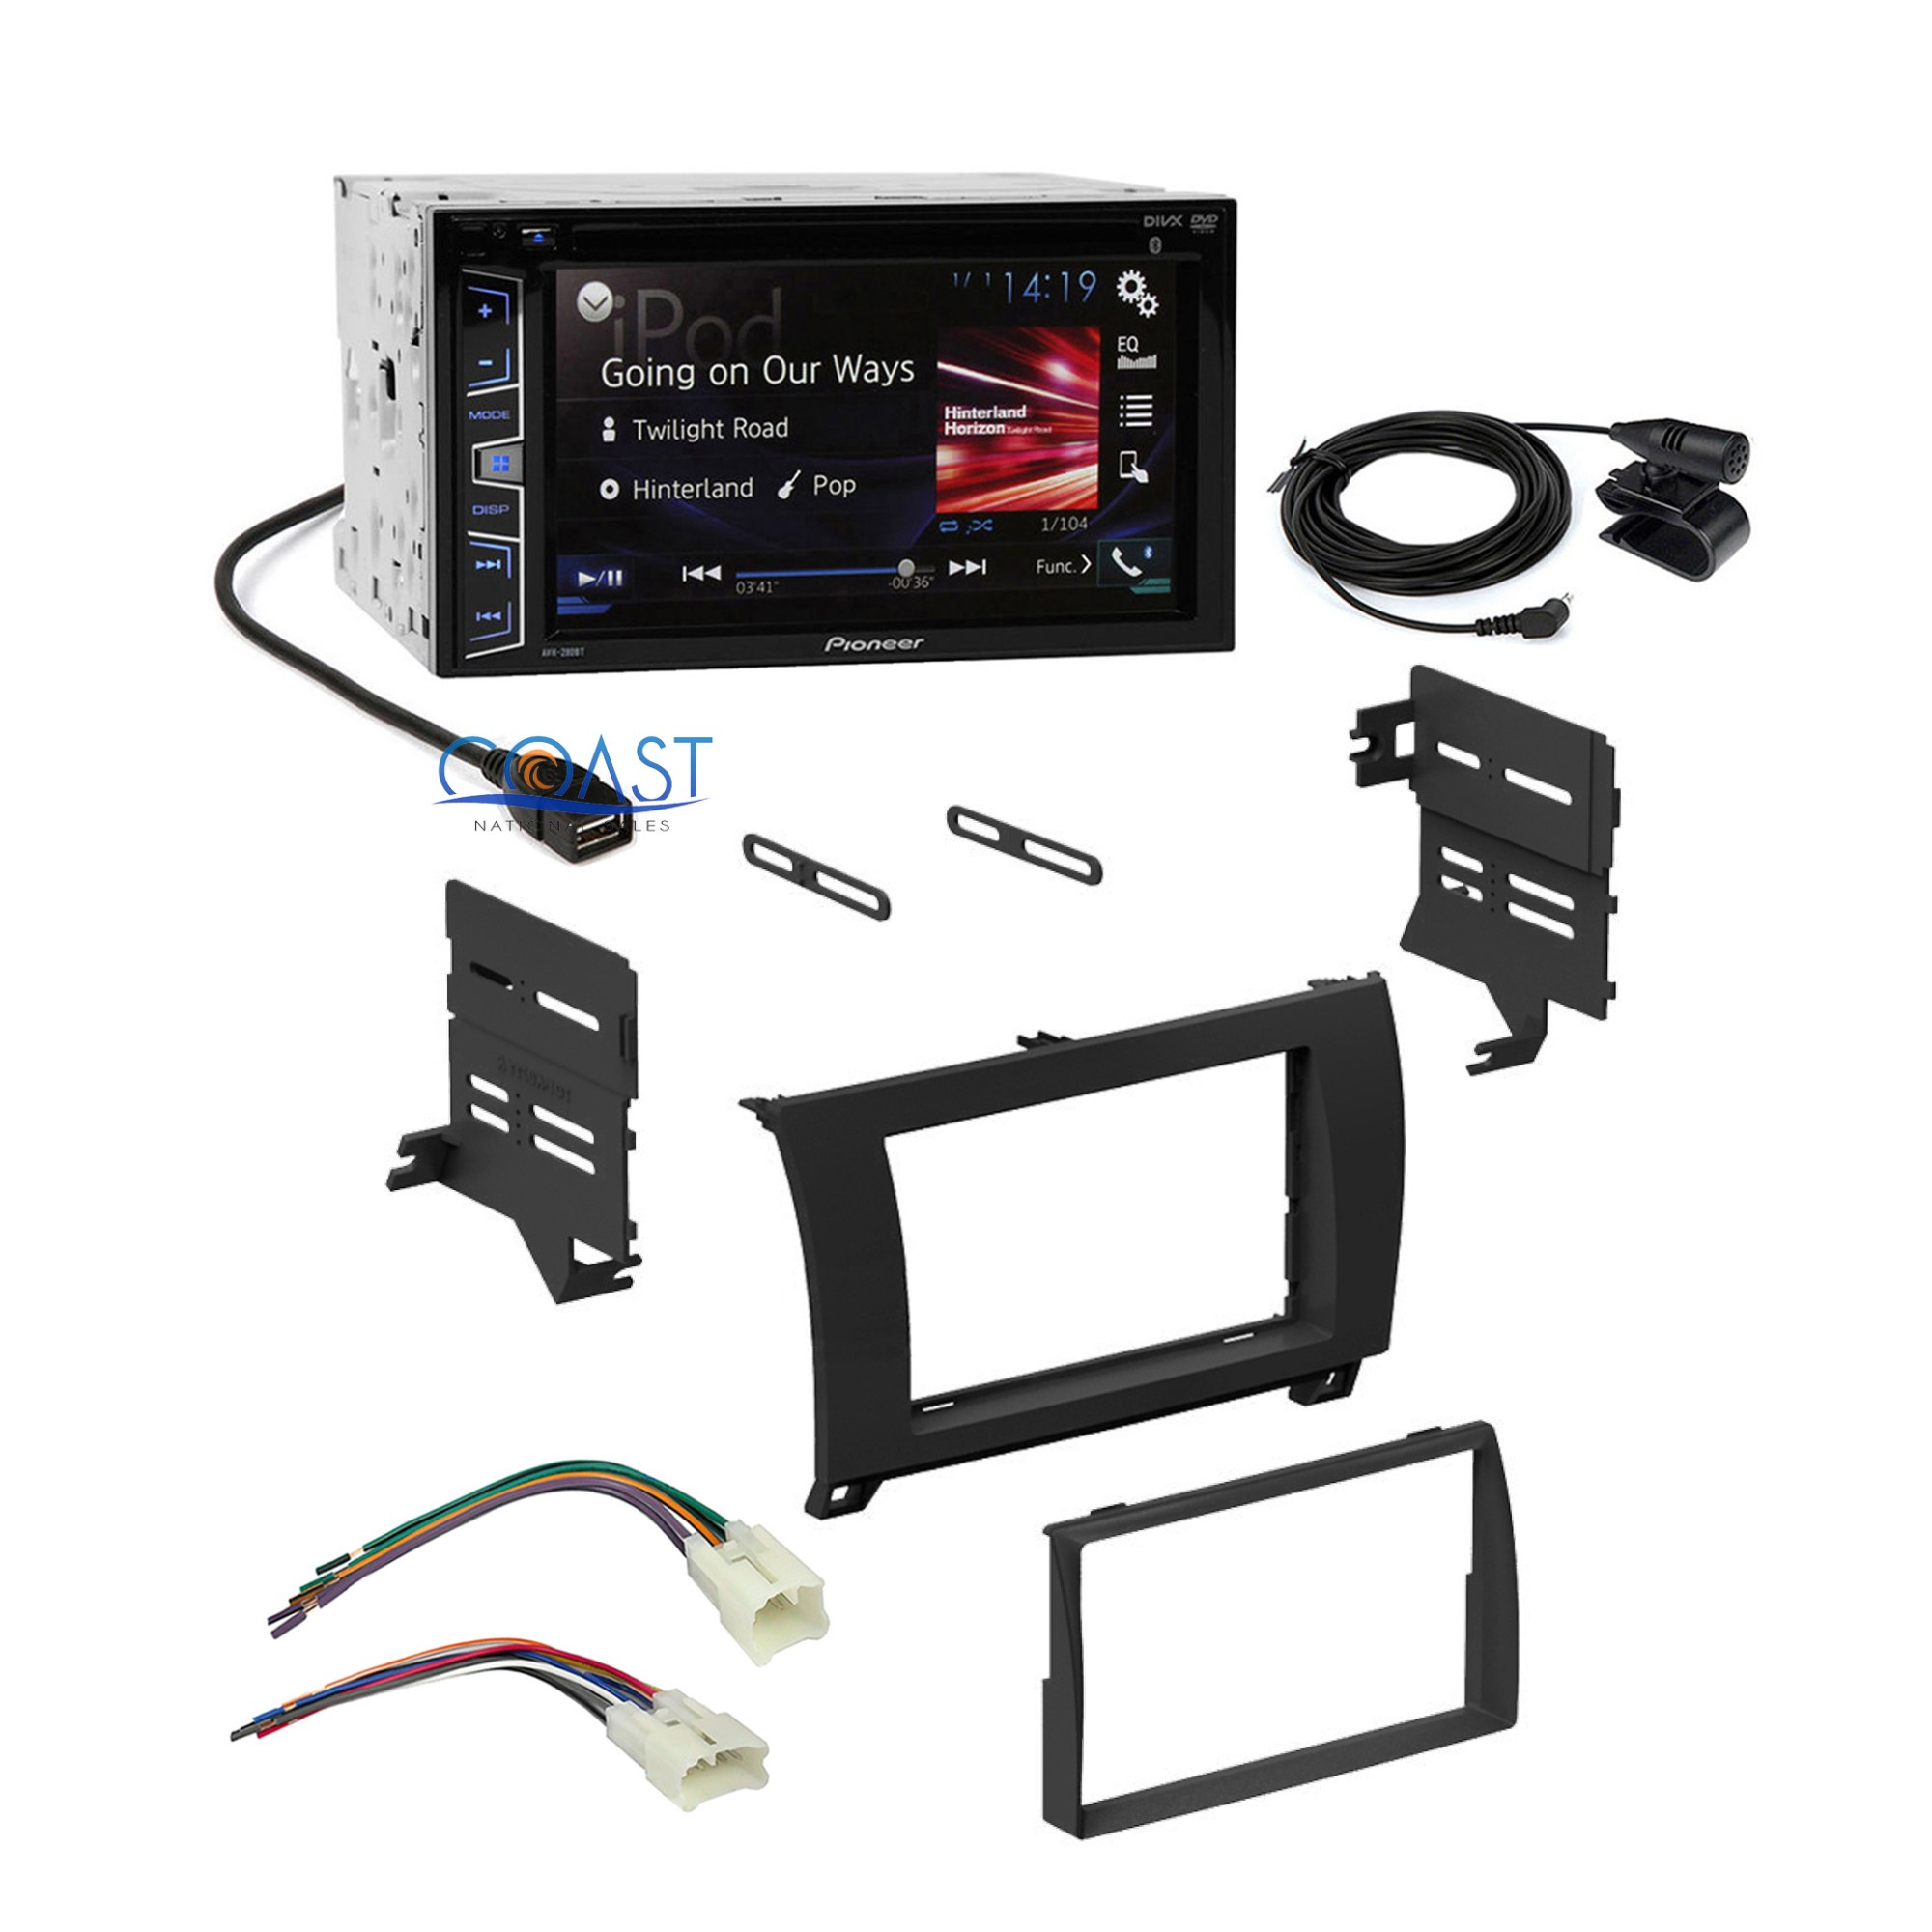 hight resolution of details about pioneer car radio black dash kit wire harness for 07 13 toyota tundra sequoia